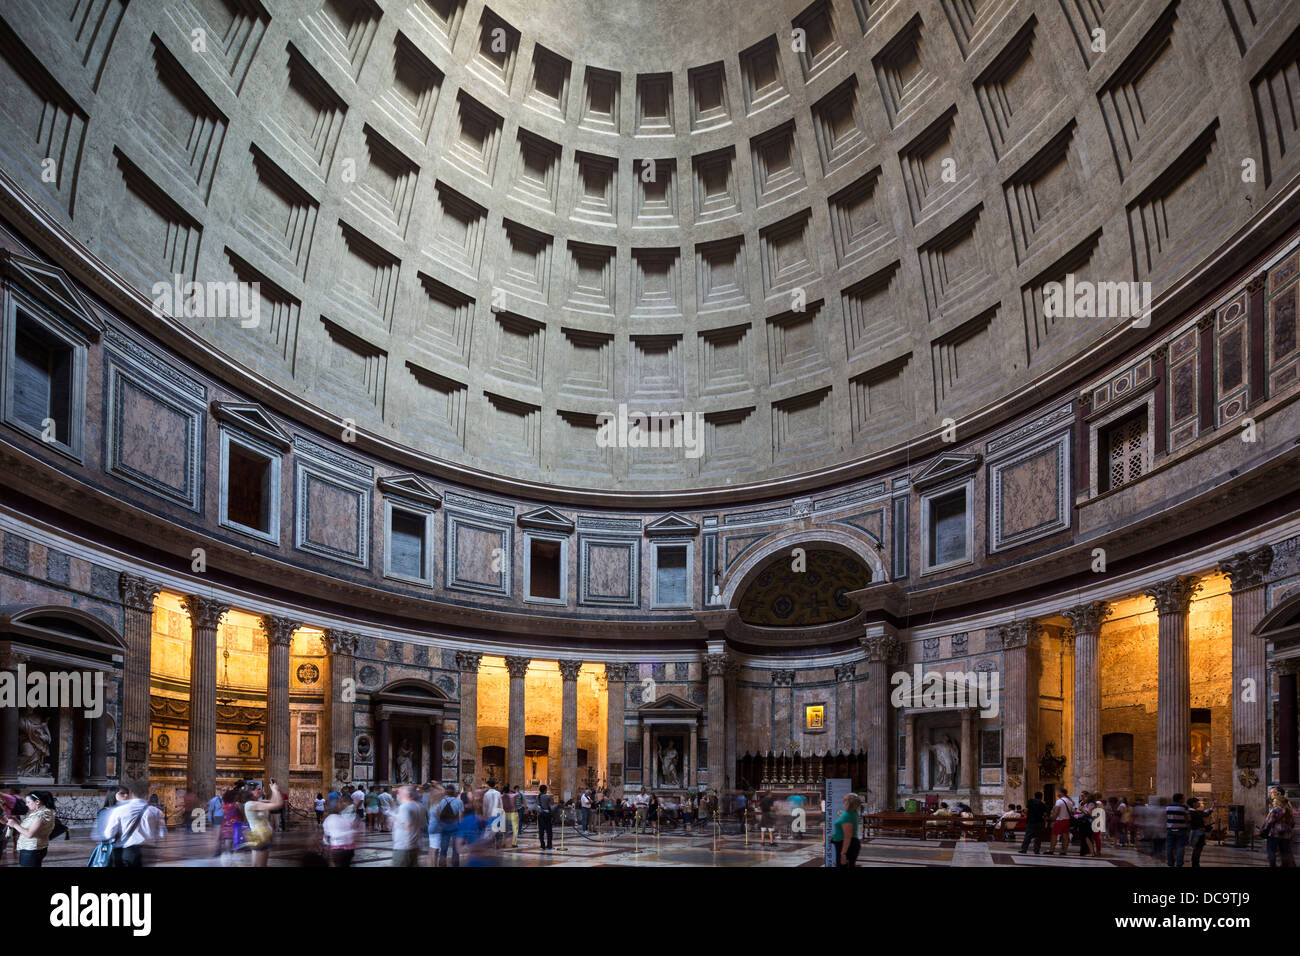 interior dome of Pantheon, Rome, Italy - Stock Image